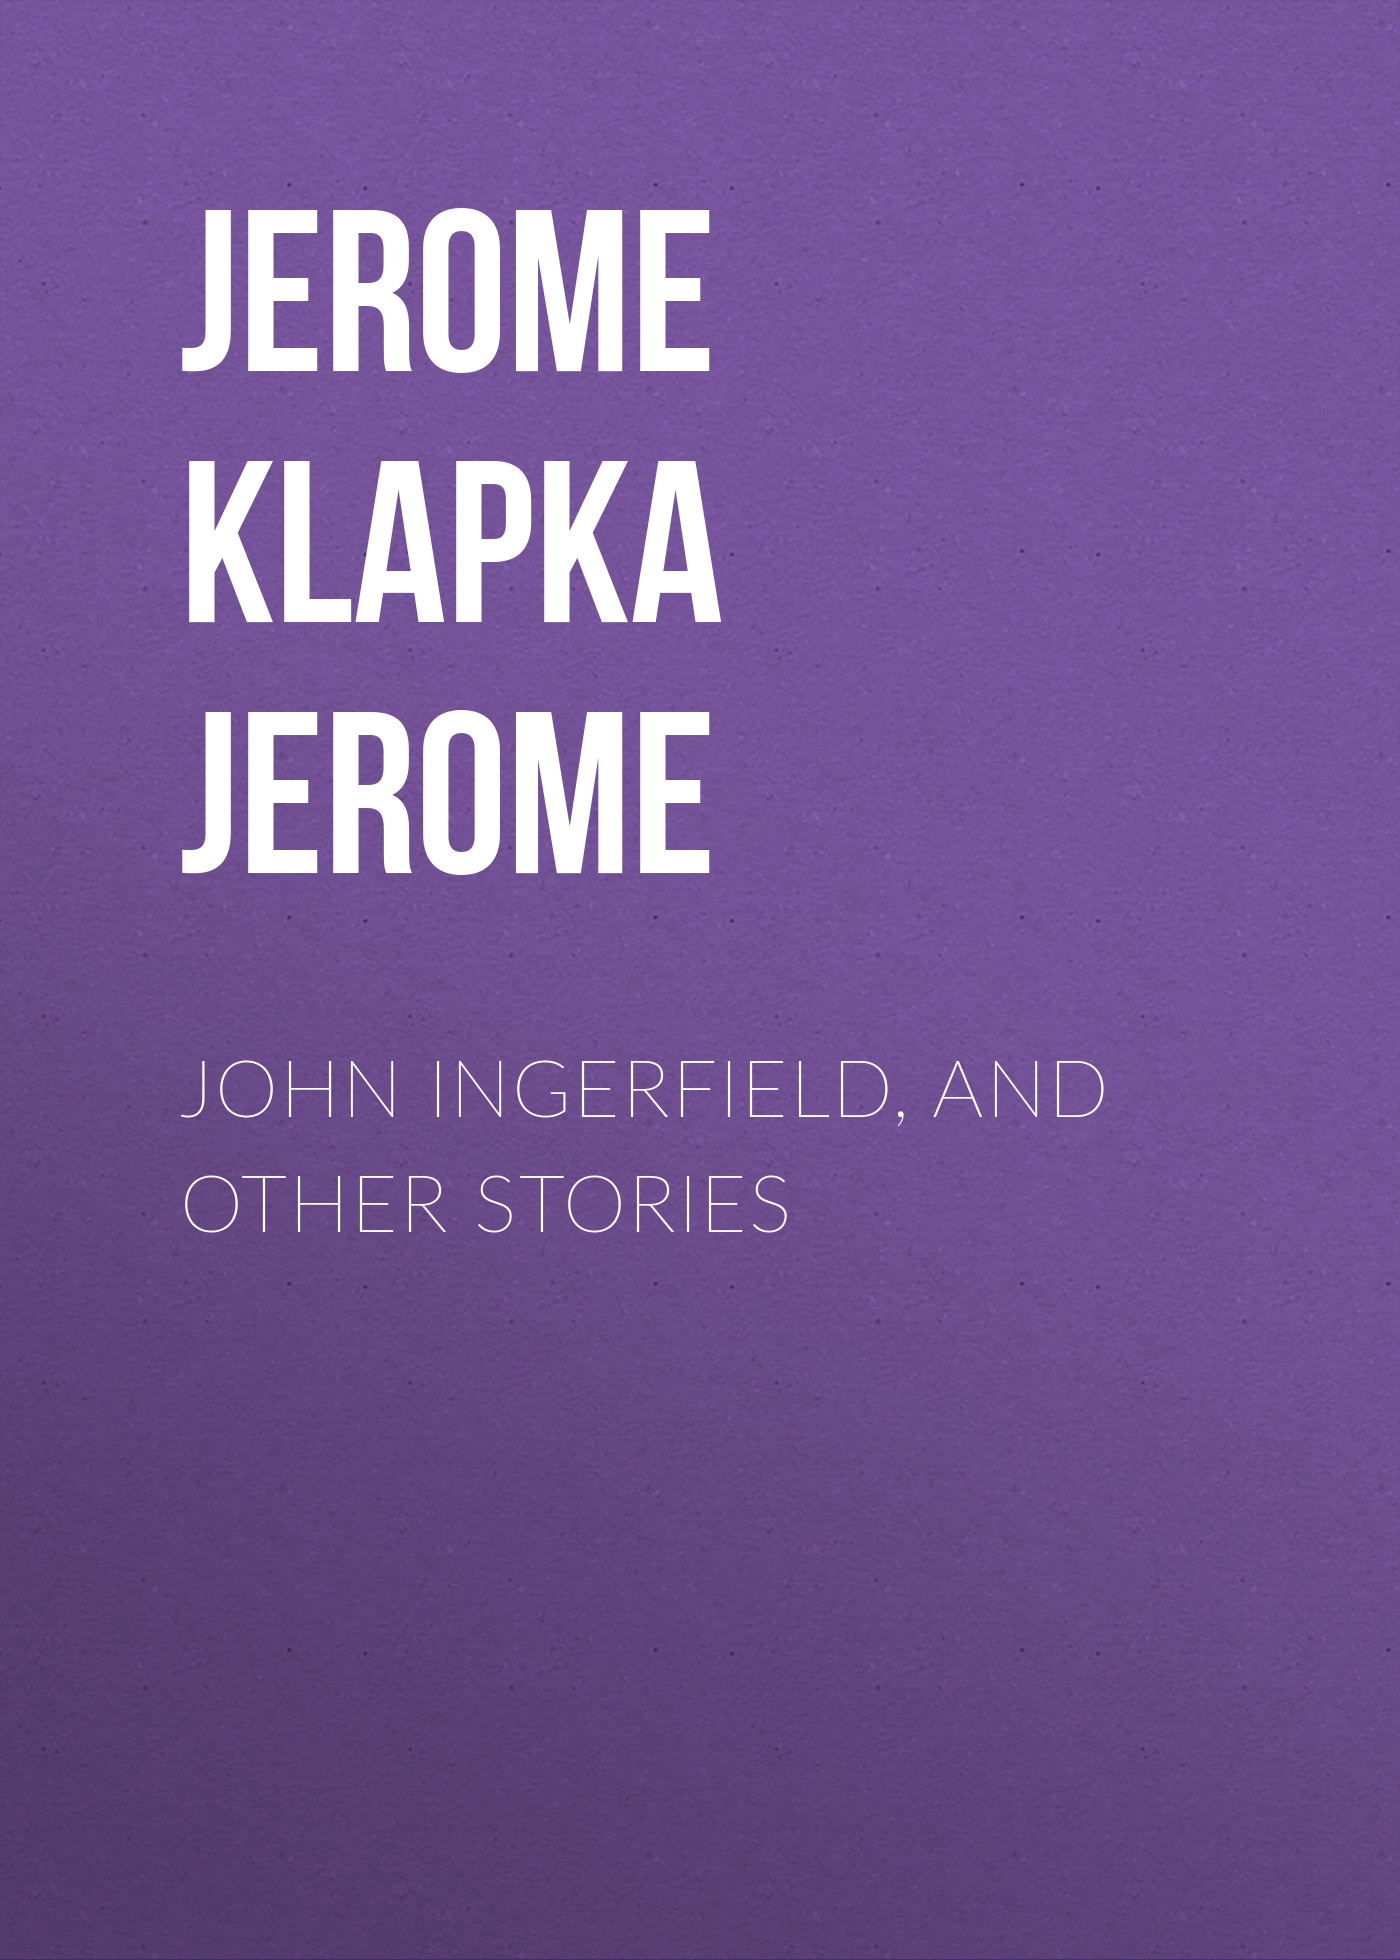 Джером Клапка Джером John Ingerfield, and Other Stories джером клапка джером diary of a pilgrimage